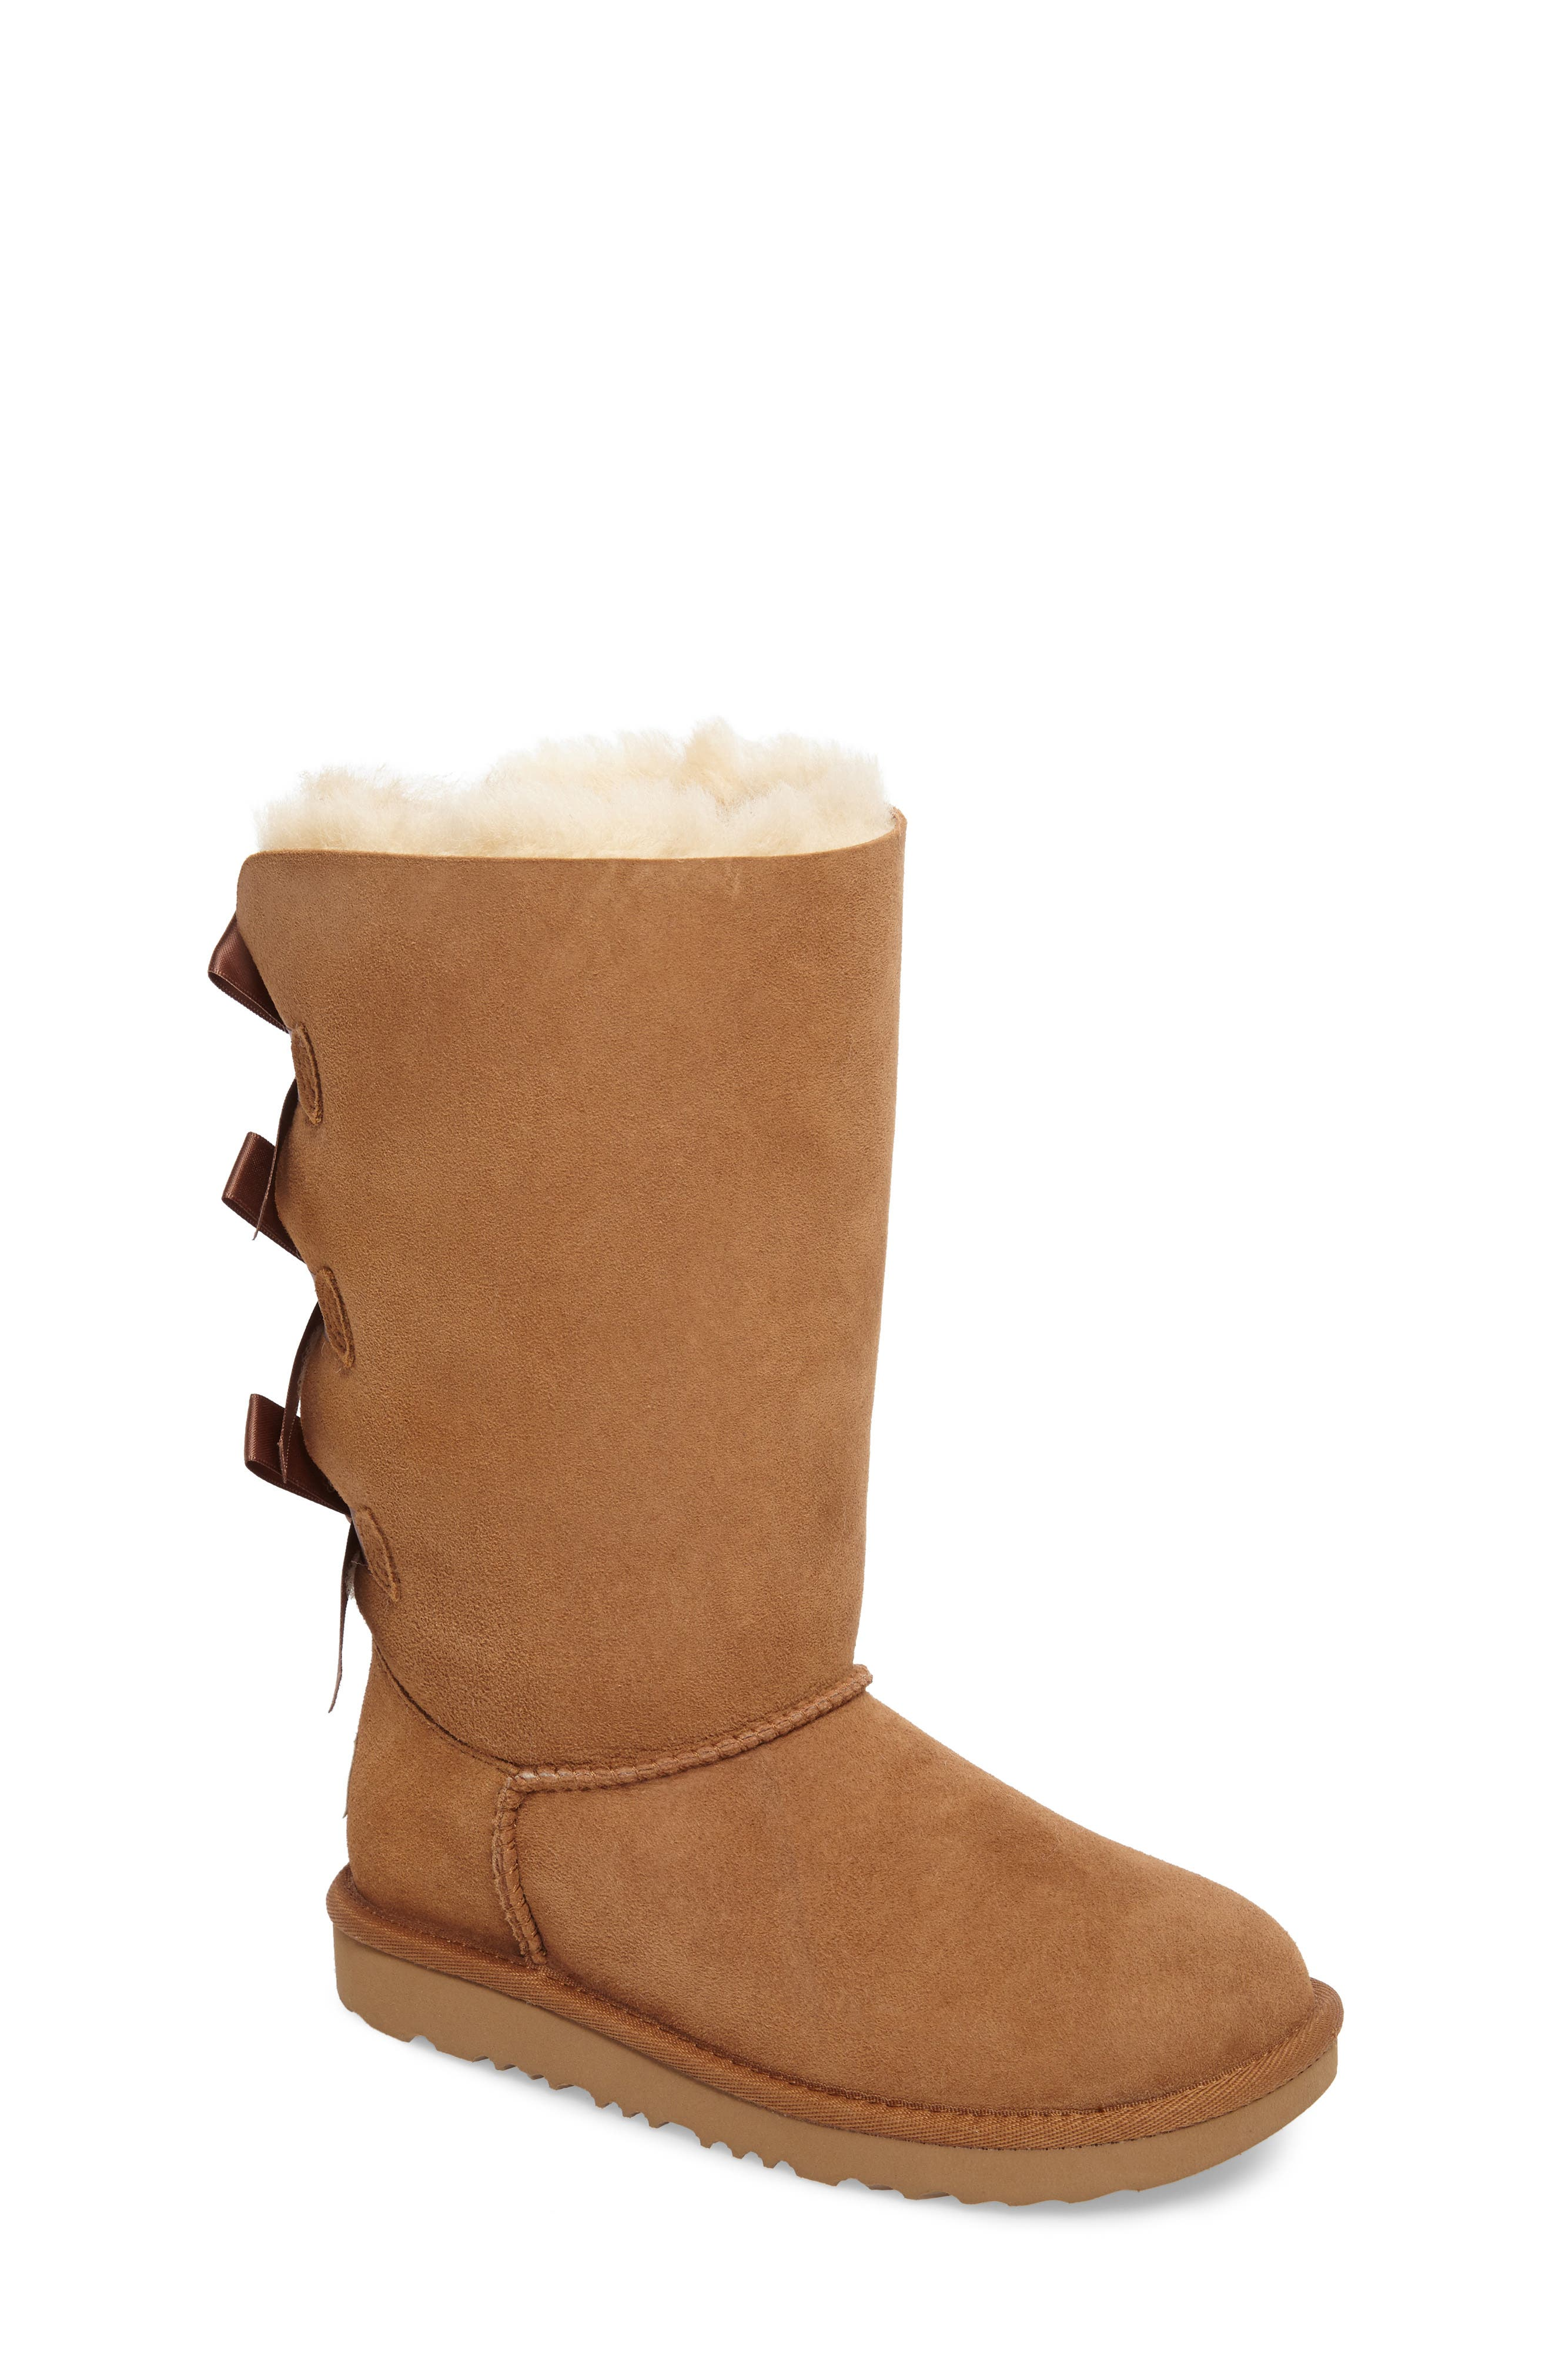 UGG<SUP>®</SUP>, Bailey Bow Tall II Water Resistant Genuine Shearling Boot, Main thumbnail 1, color, CHESTNUT BROWN